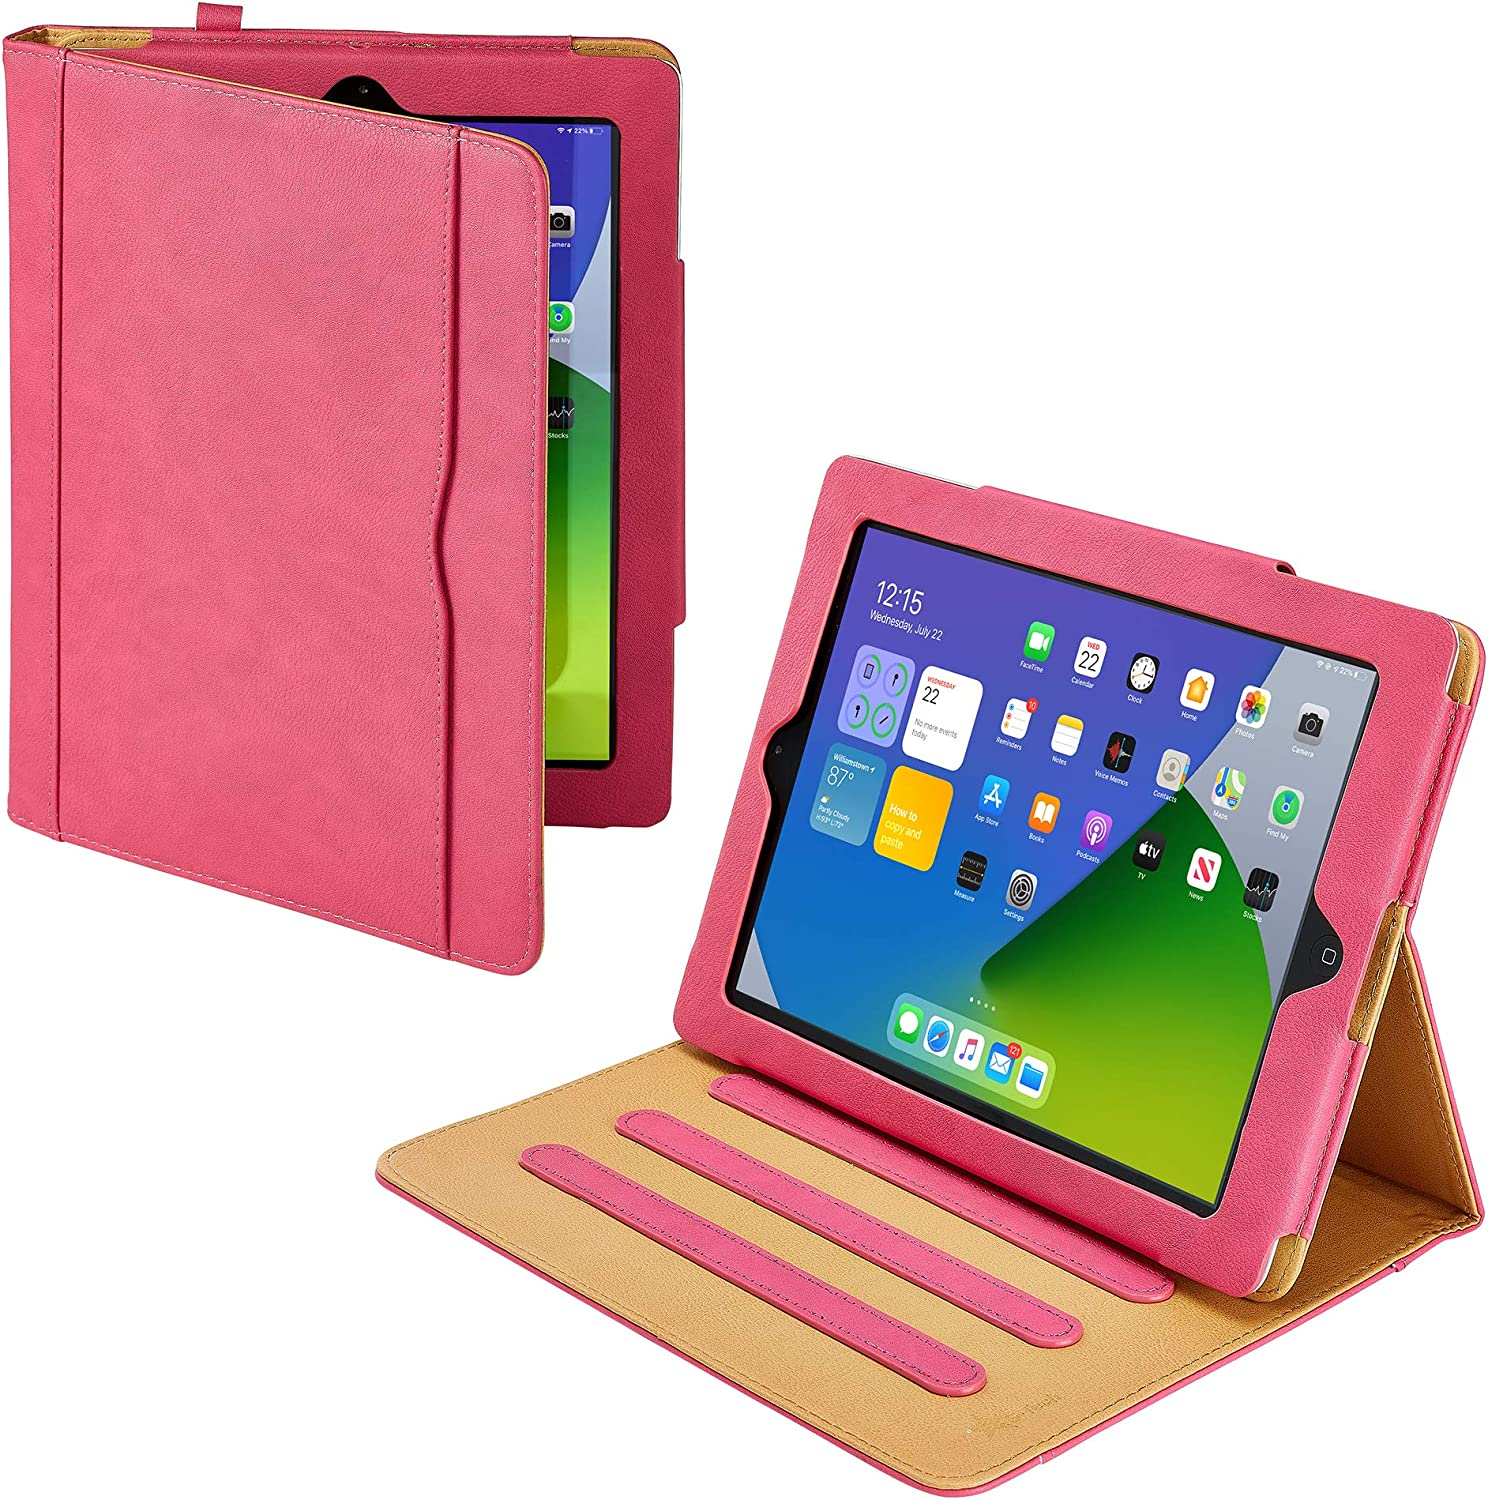 S-Tech iPad 10.2 Case 2020 iPad 8th Generation Case / 2019 iPad 7th Generation Case - Soft Leather Wallet Magnetic Smart Cover with Sleep / Wake Feature Flip Folio Pencil Holder for Apple